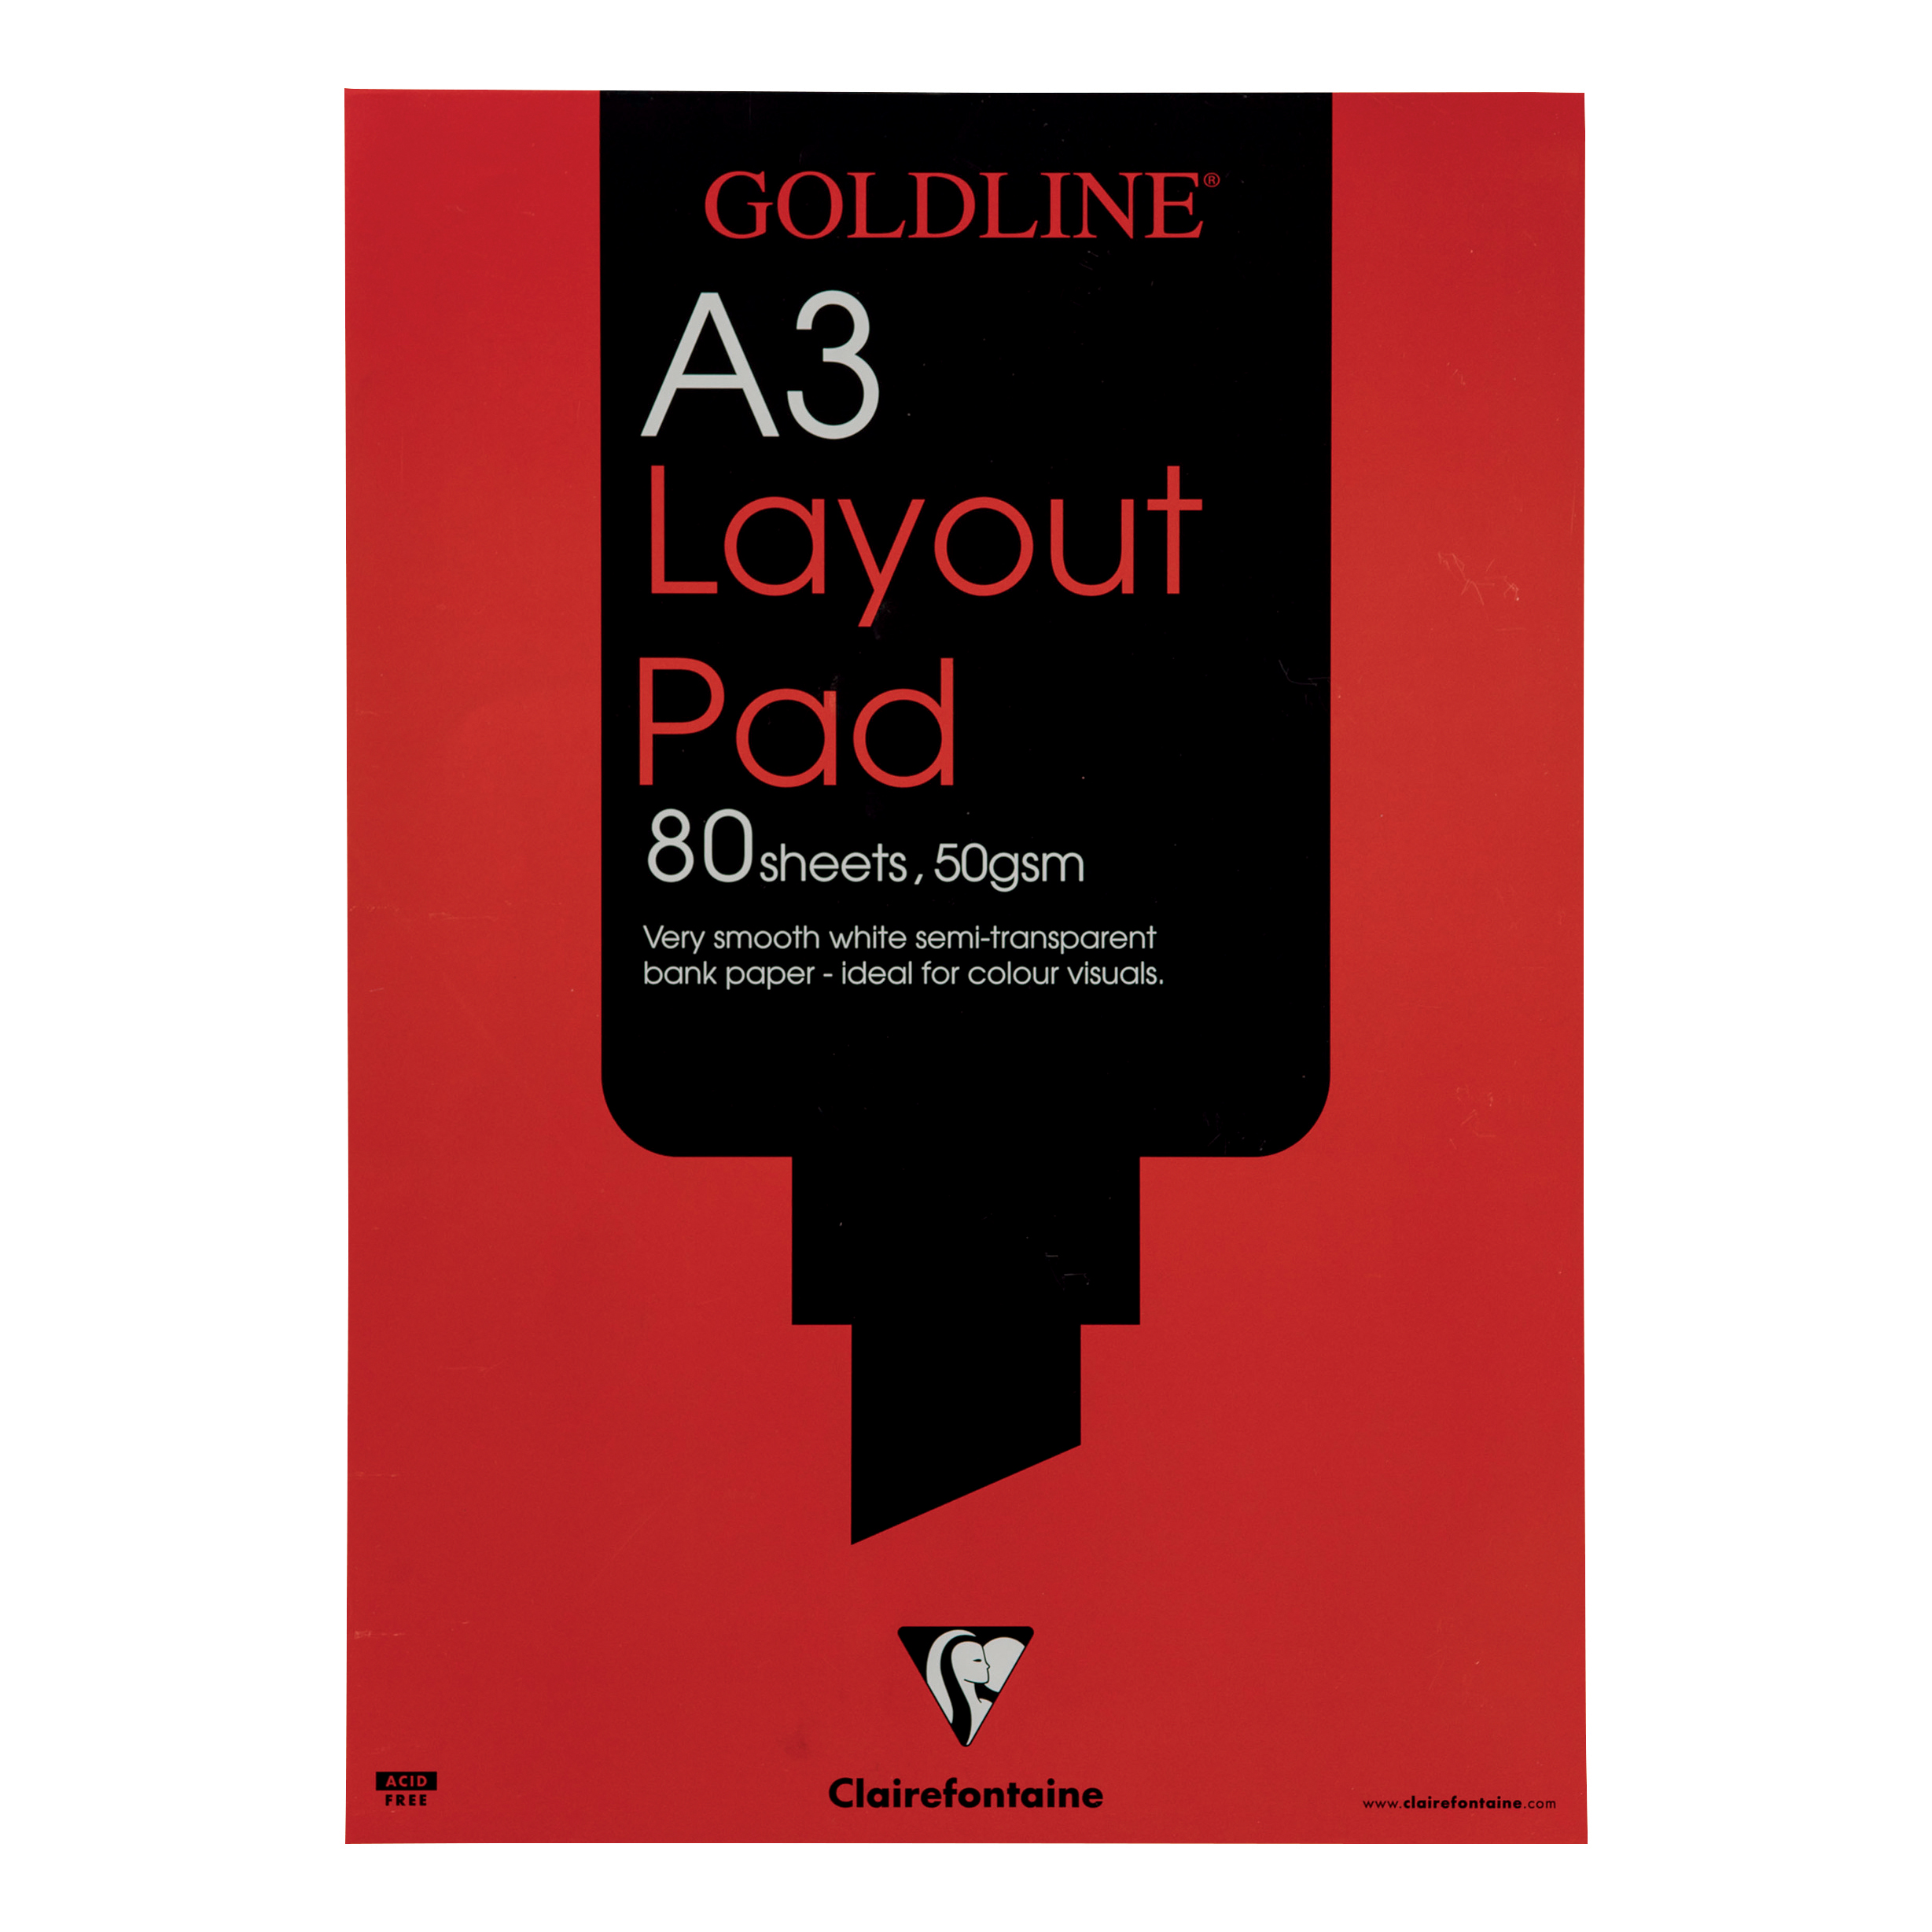 Goldline Layout Pad Bank Paper Acid-free 50gsm 80 Sheets A3 Ref GPL1A3Z [Pack 5]